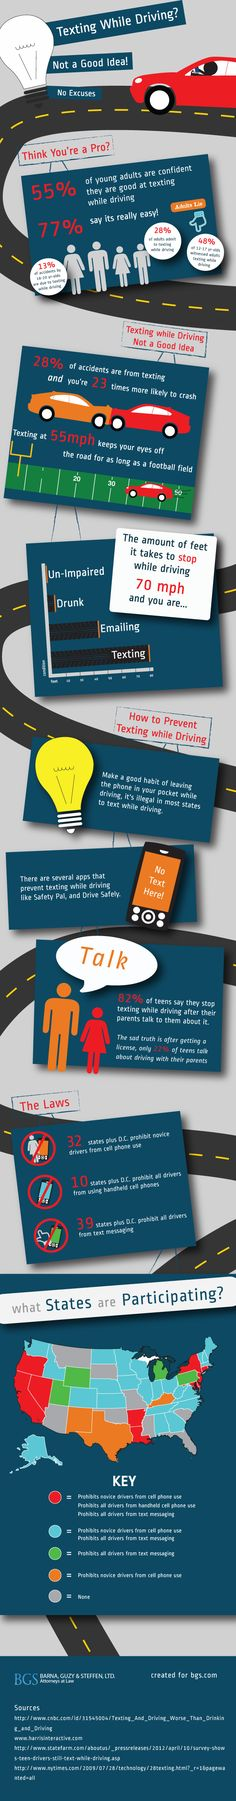 "[FINDINGS] No Texting Whille Driving Laws and Statistics. Most students believe they are ""pros"" at texting and driving. This shows why it is impossible for texting and driving to be safe by showing statistics, graphs, and images while relating them to young people.  Gaille, Brandon. ""31 Good No Texting and Driving Slogans."" Tips From A Blog Millionaire. 7 Sept. 2012. Web. 1 Sept. 2015. <http://brandongaille.com/31-good-no-texting-and-driving-slogans/>."